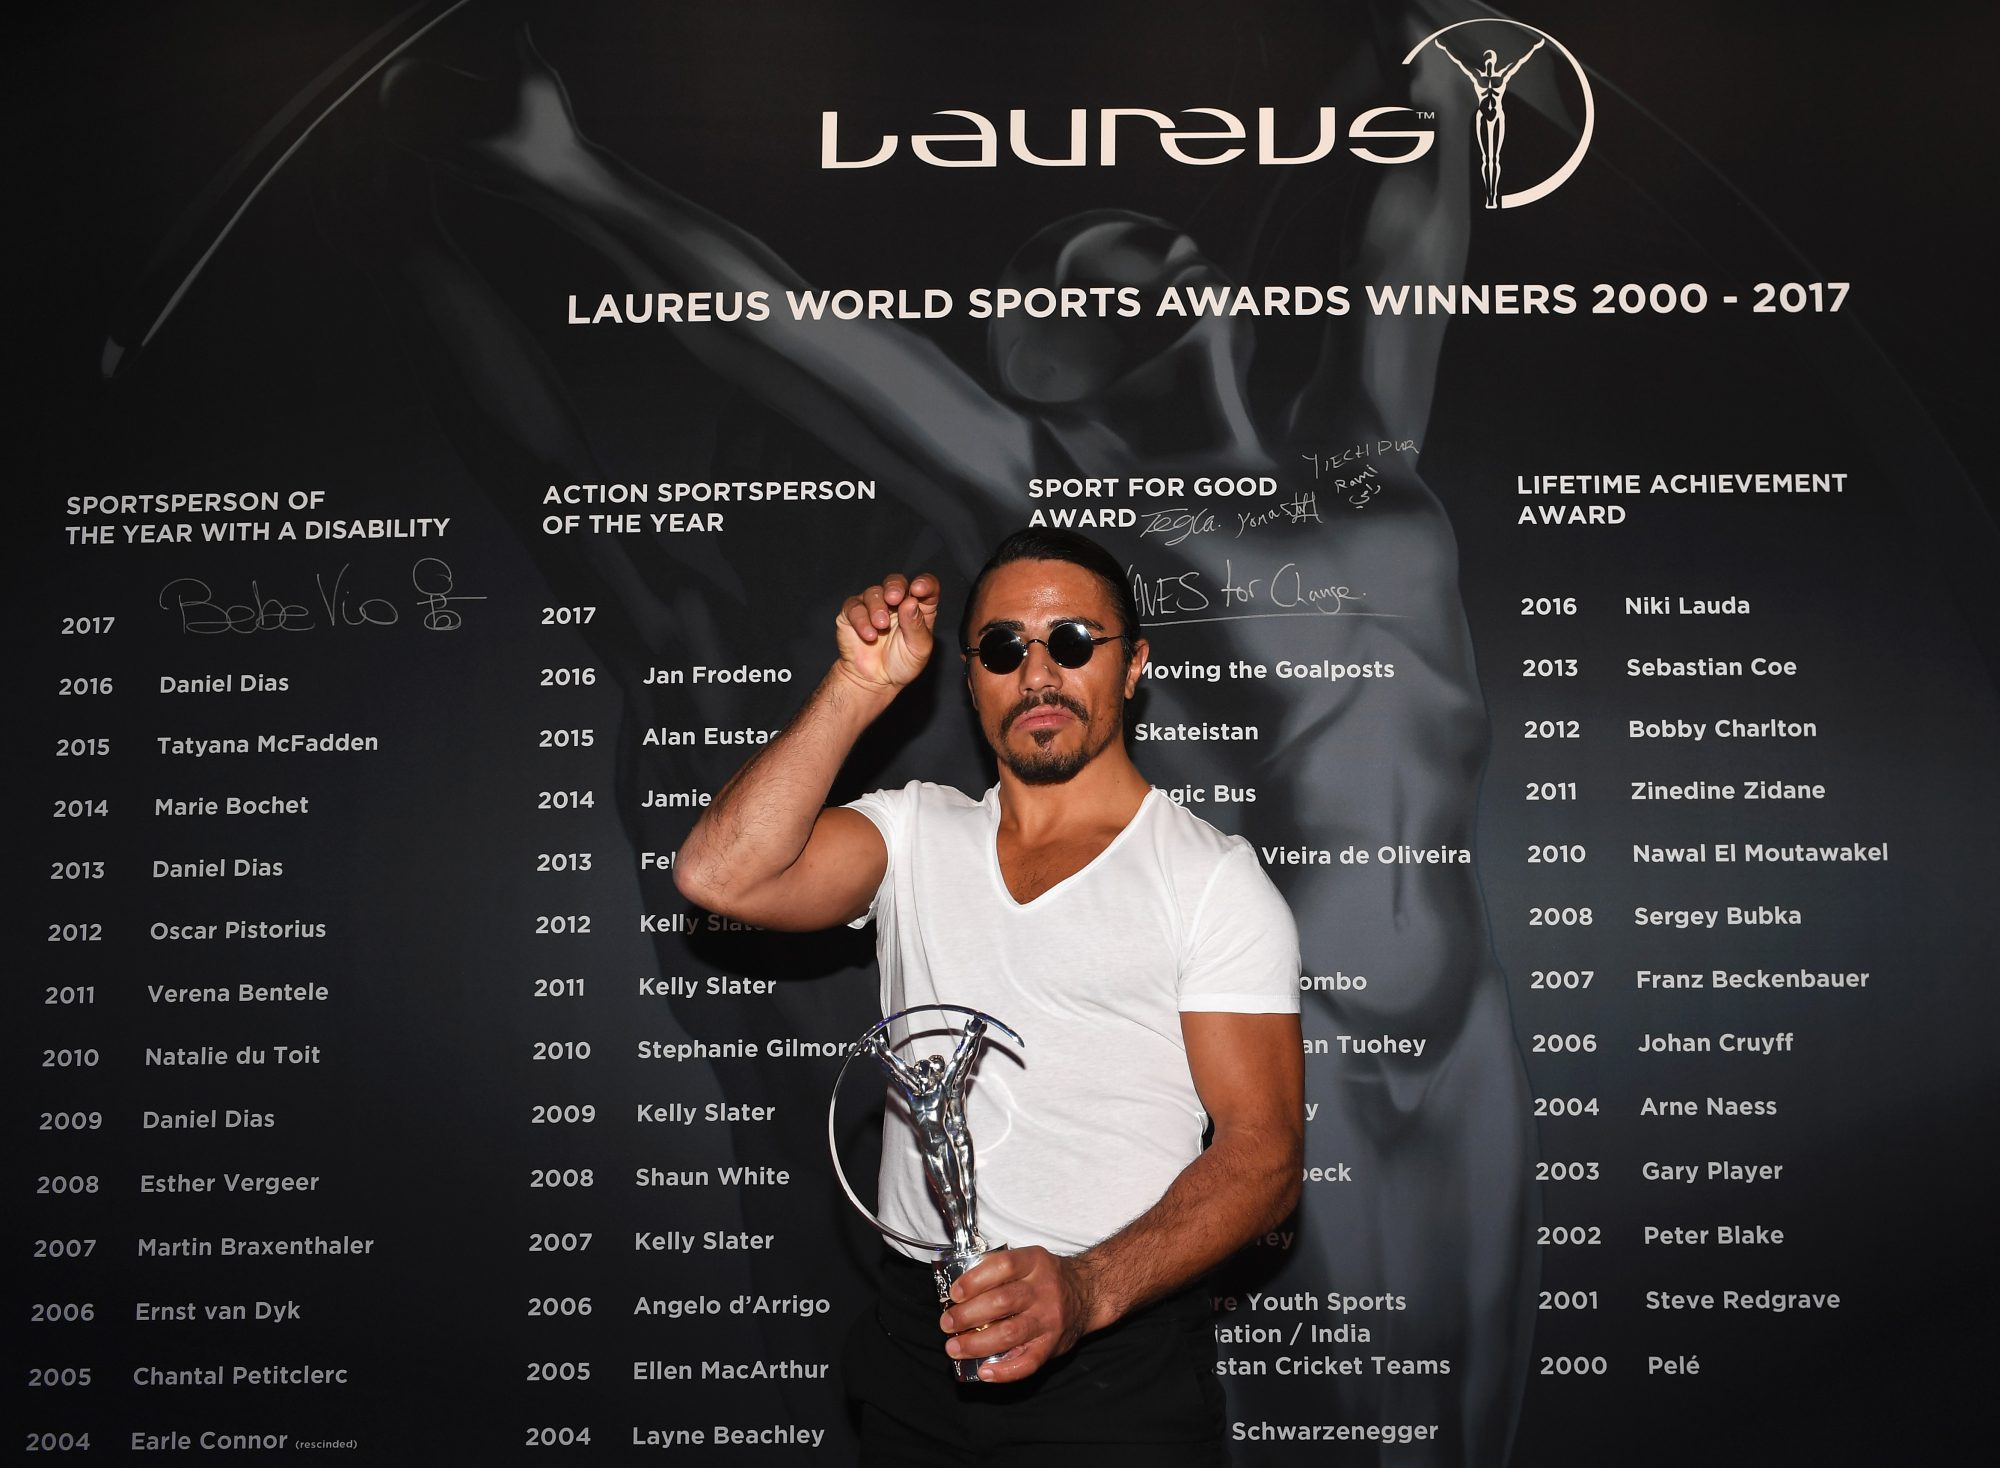 Salt Bae Is Considering an IPO on His Restaurant Business